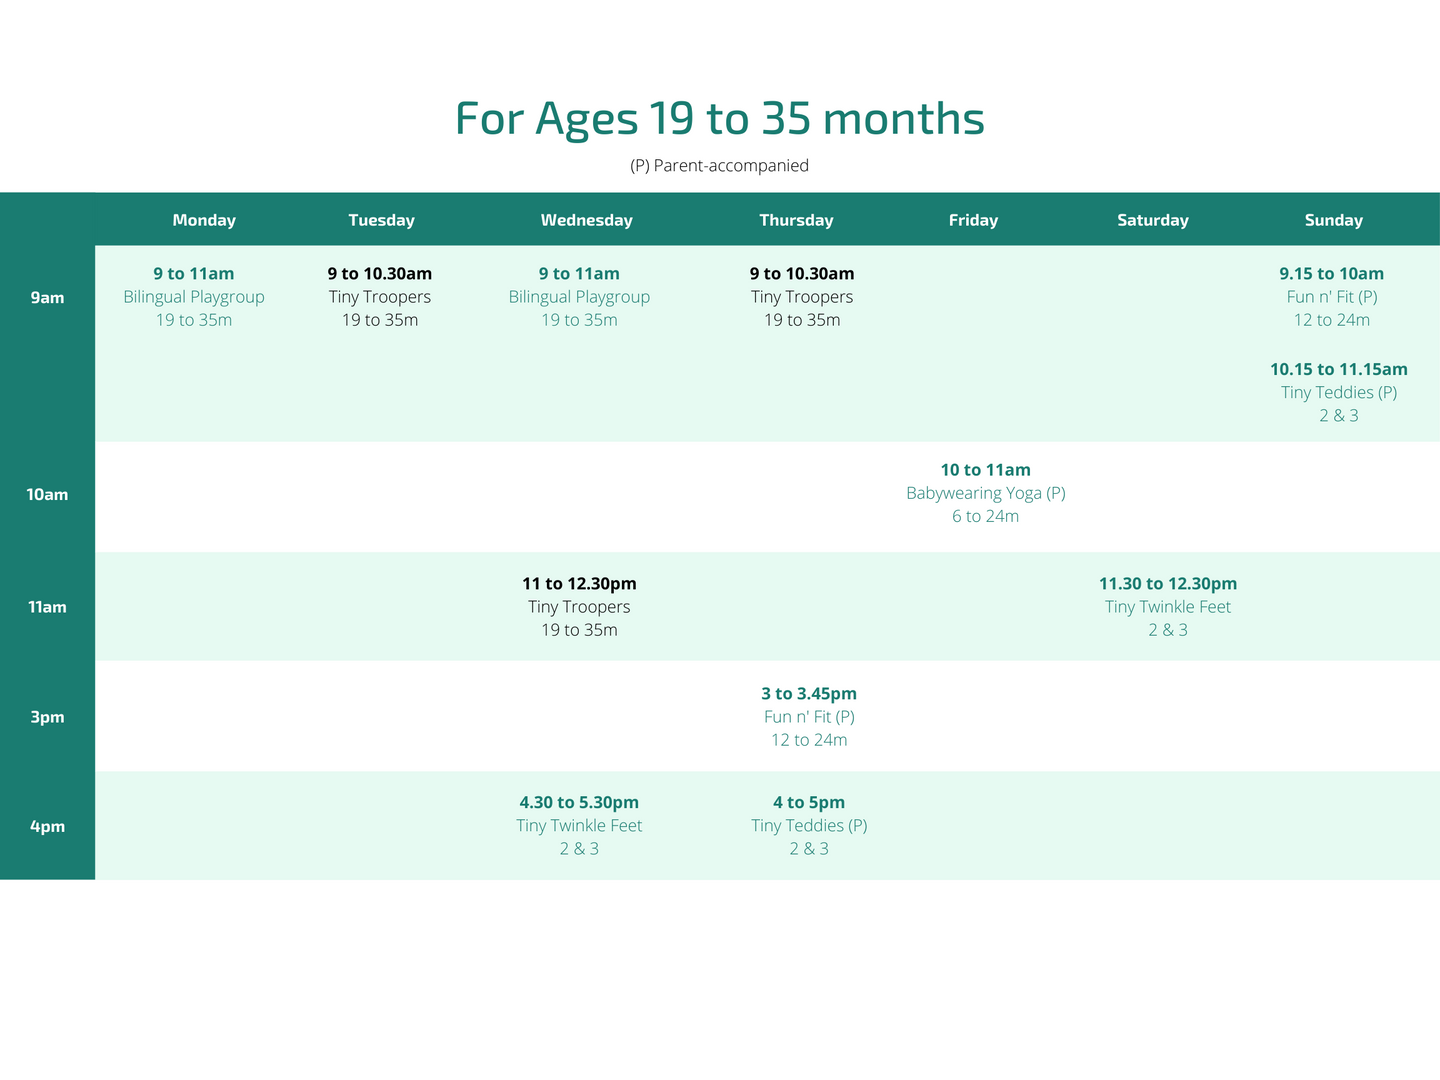 For ages 19 to 35 months